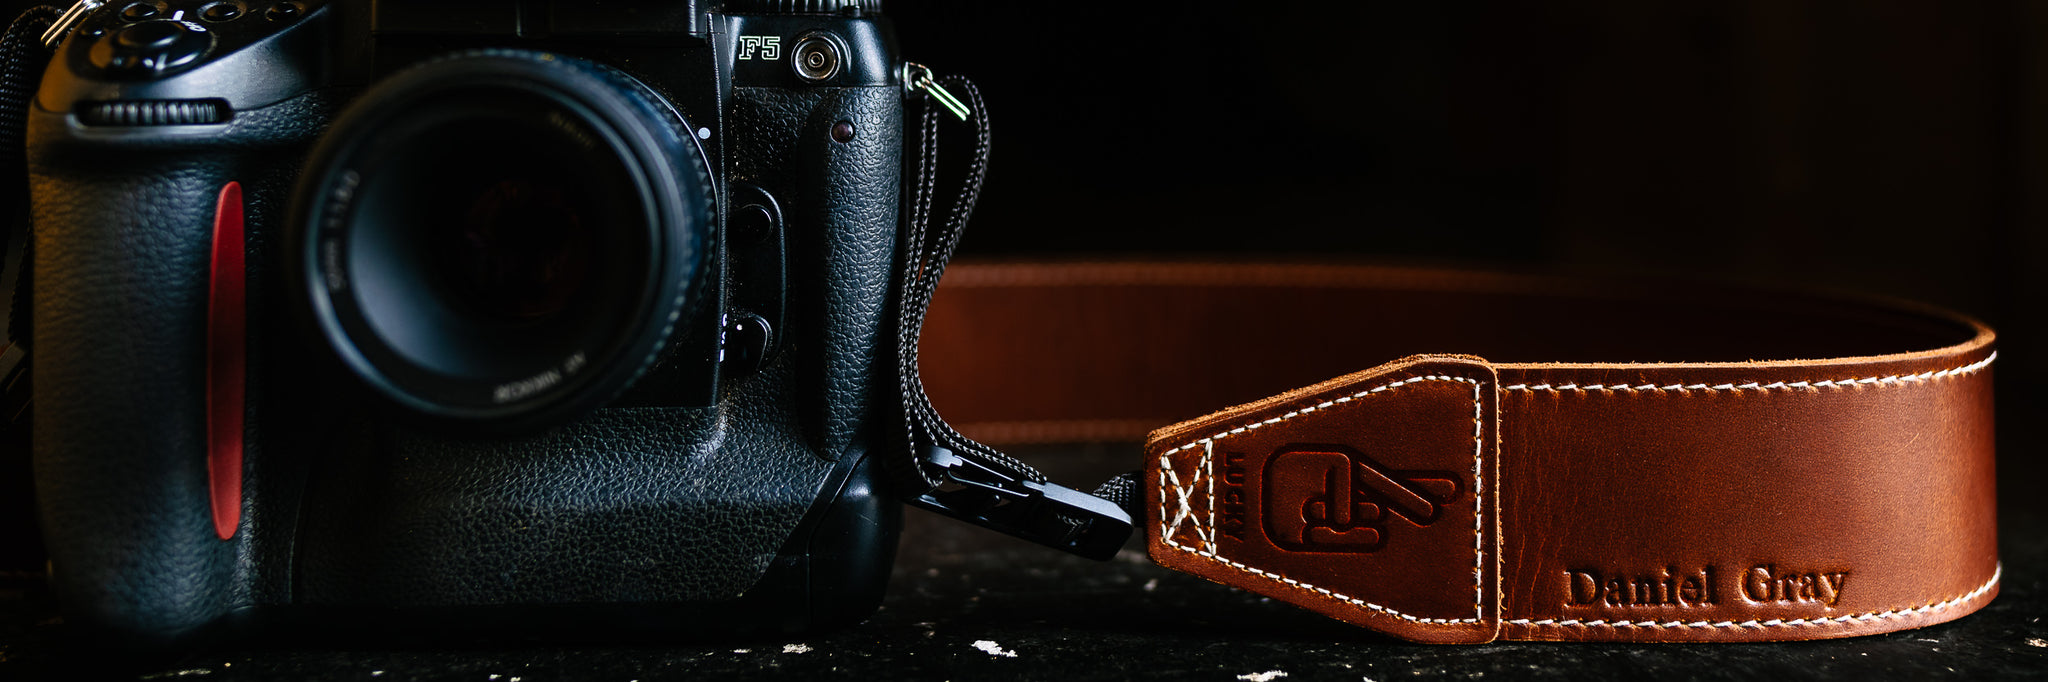 Lucky Camera straps leather embossing with quick release ends